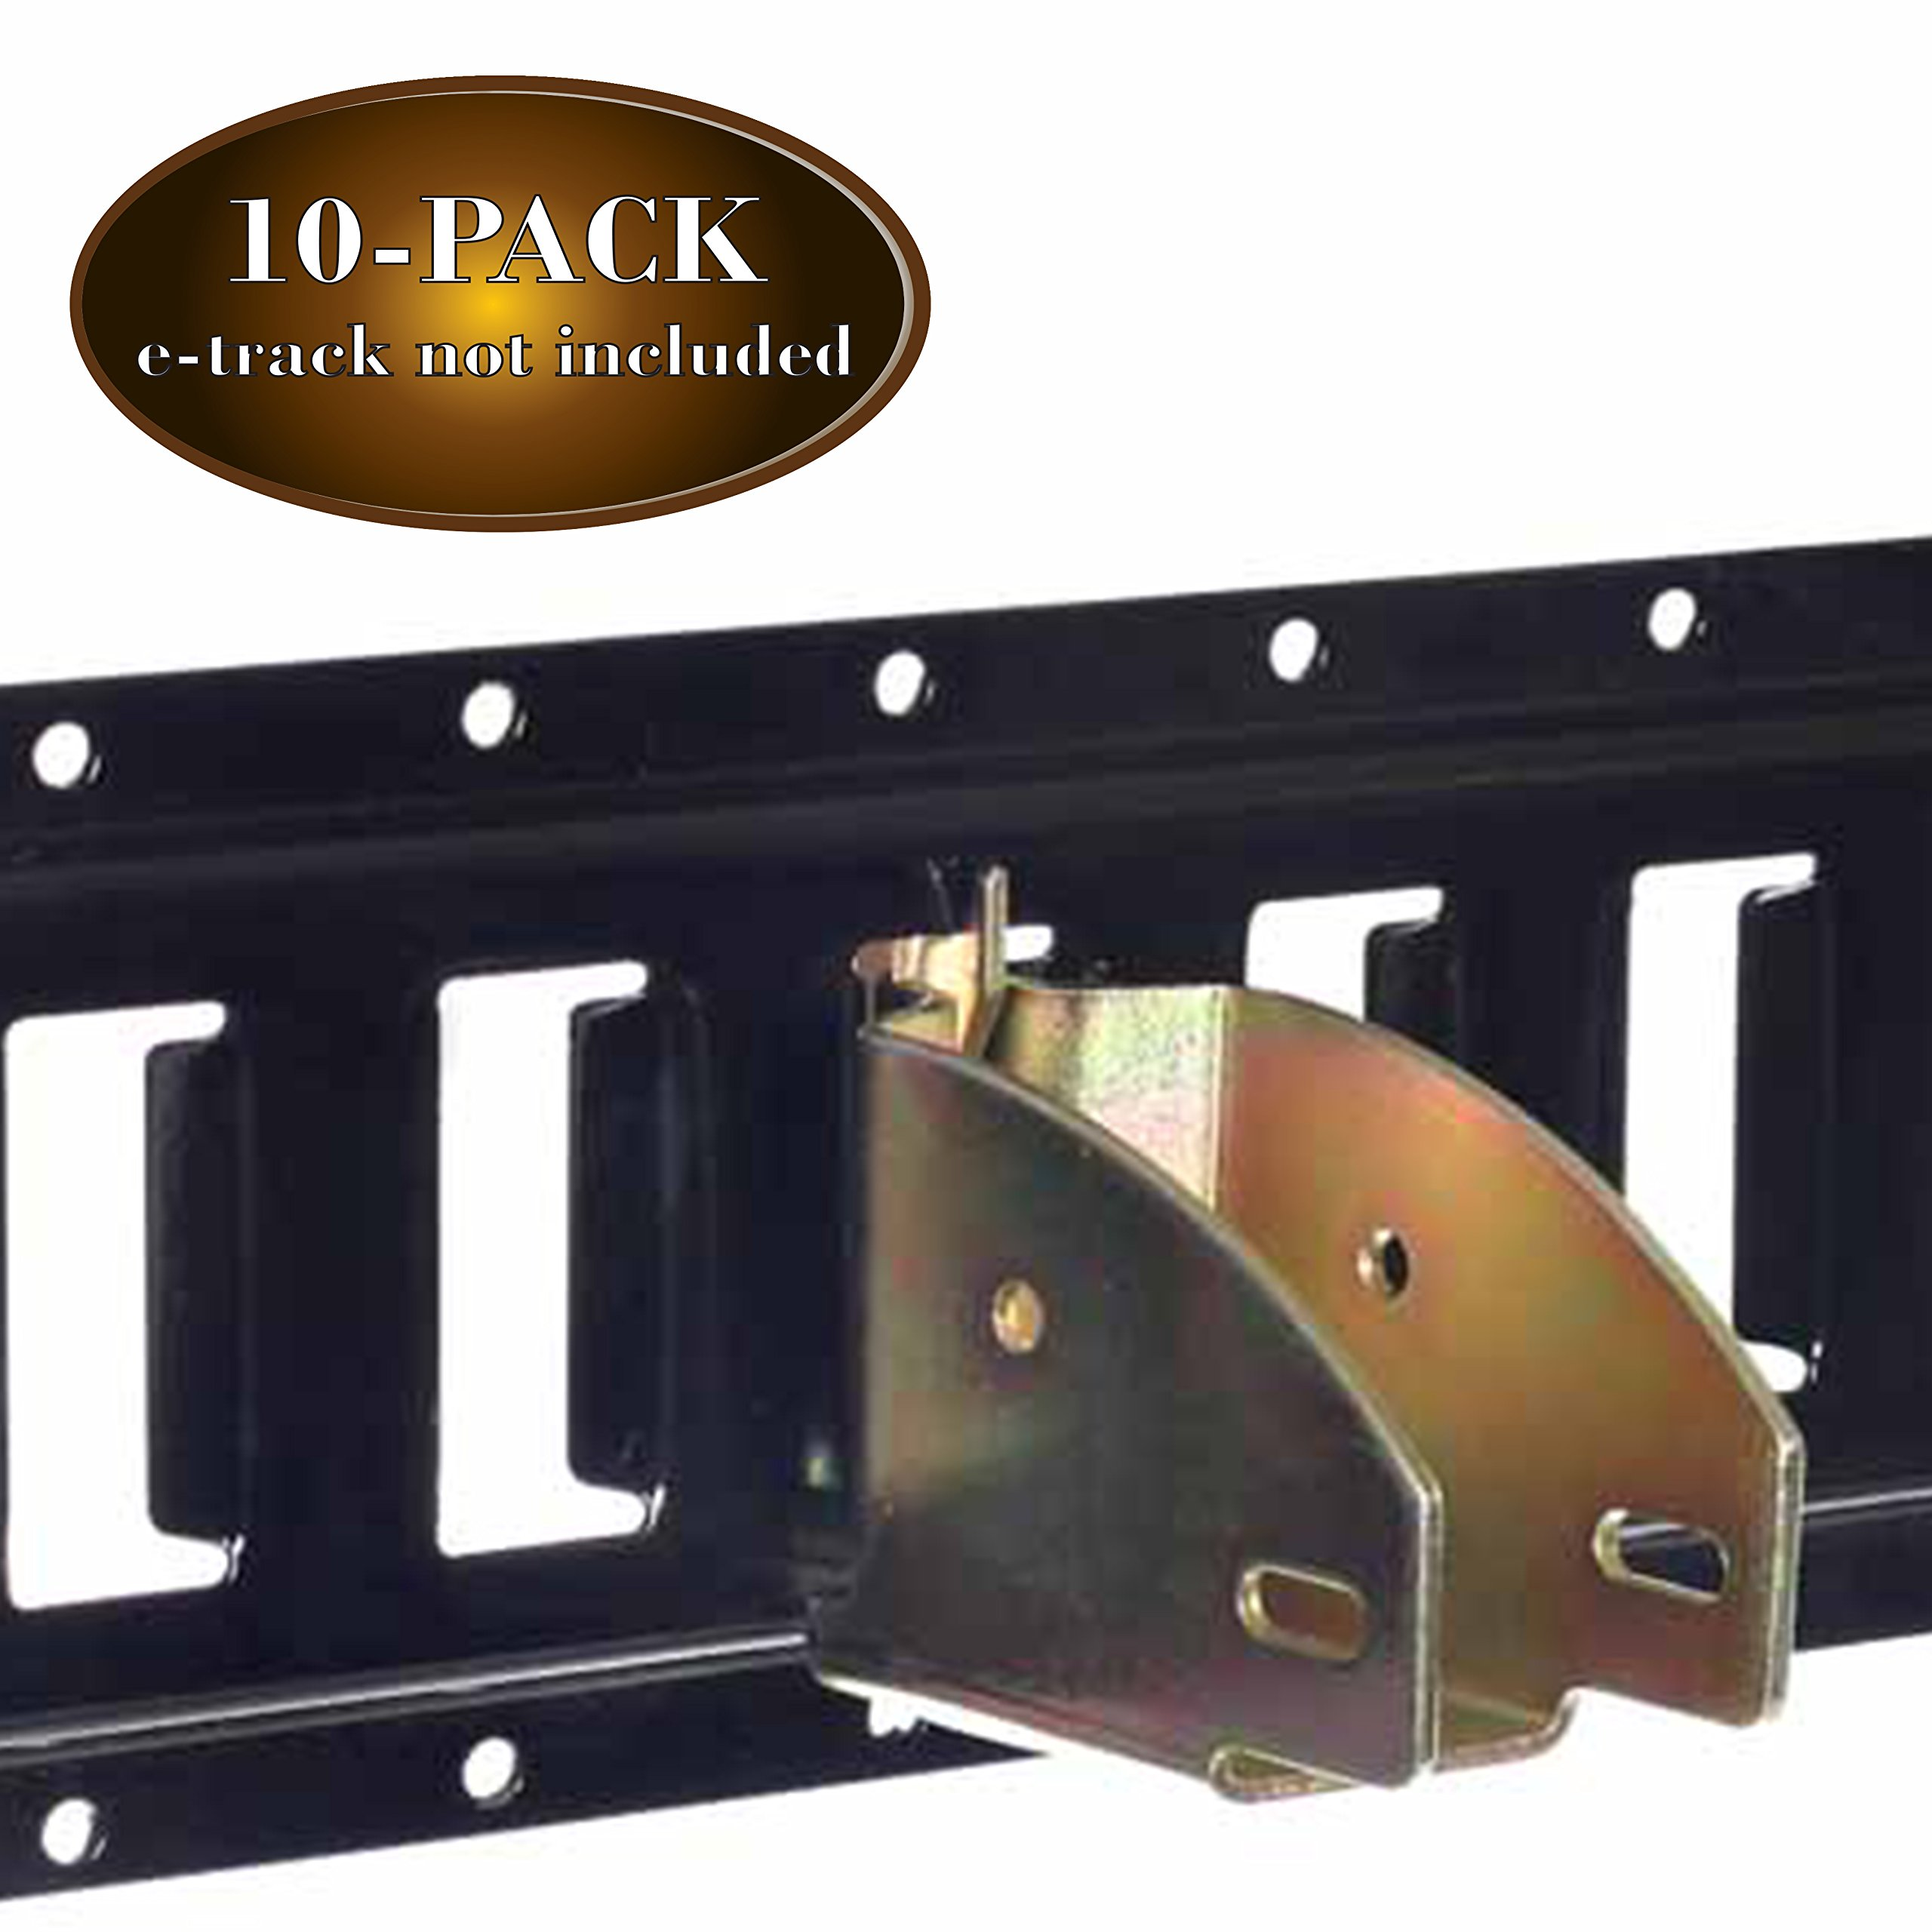 10 E-Track Wood Beam End Socket Shelf Brackets w/E Track Fittings, for 2x4 & 2x6 in Truck, Trailer, Van, RV, Cargo Tie-Down Systems, ETrack Tiedowns for Custom Load Bar, Handmade Cabinet, Shelves by DC Cargo Mall